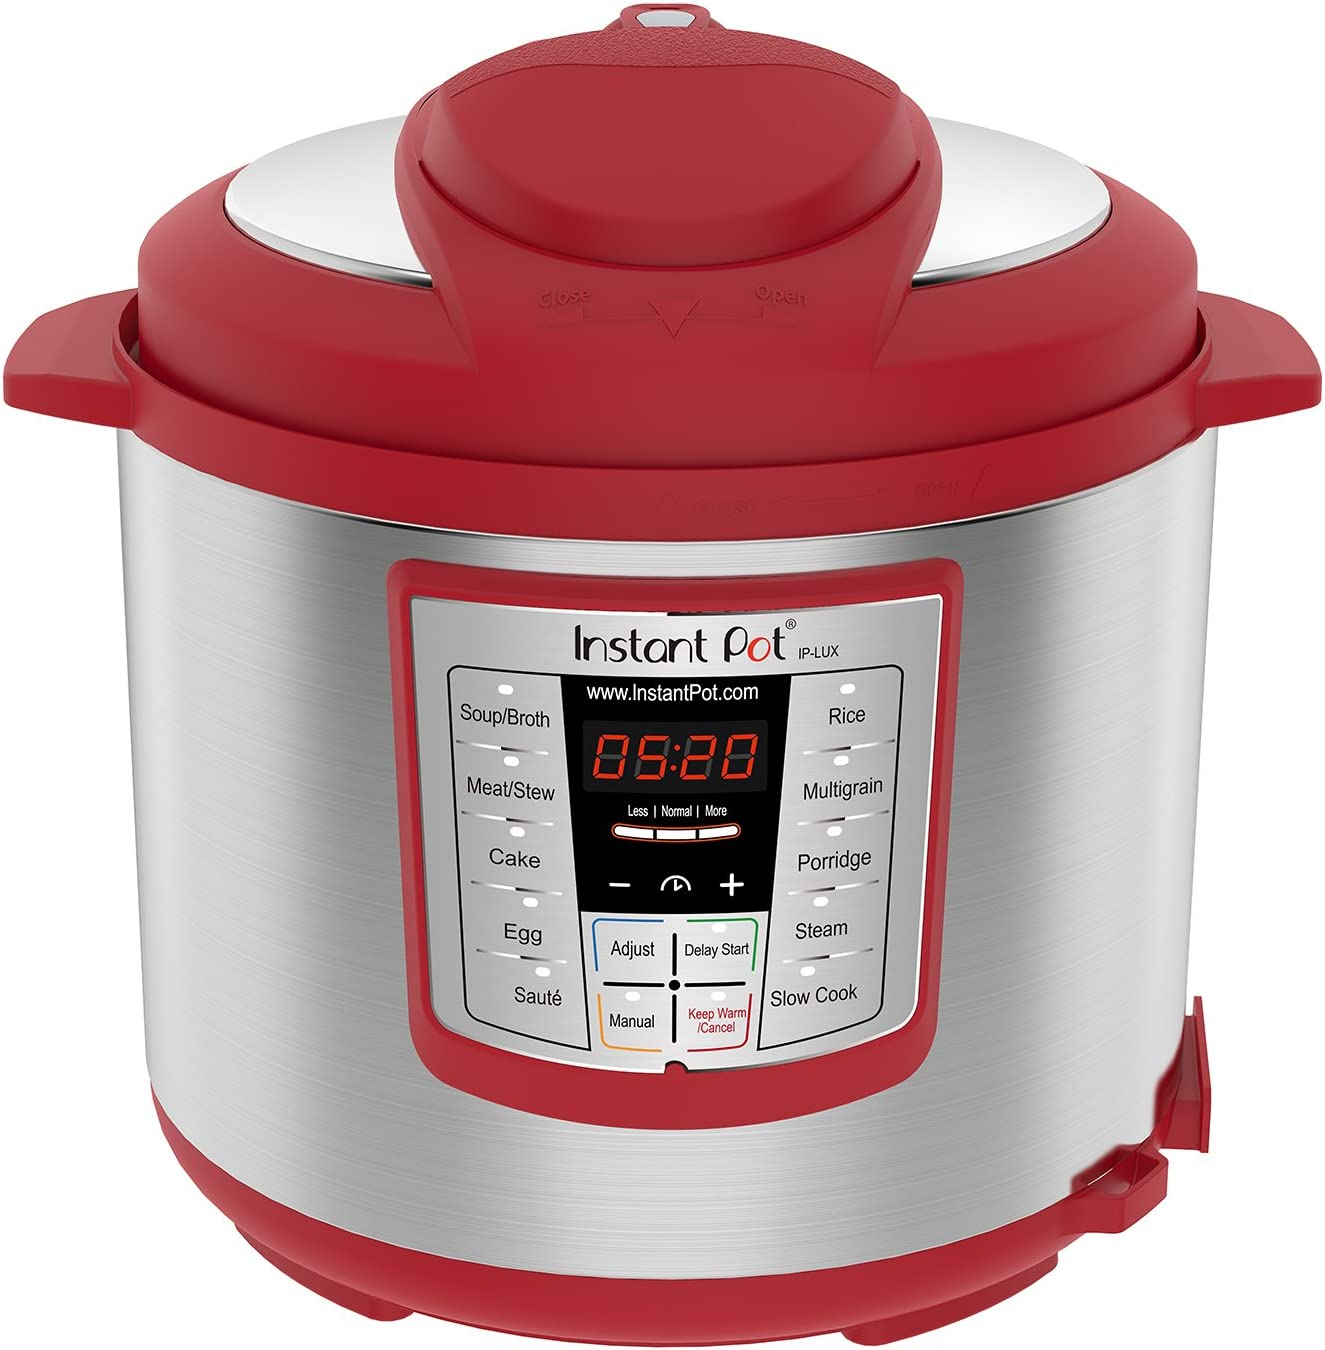 Instant Pot Lux 6 Qt Red 6 in 1 Muti Use Programmable Pressure Cooker, Slow Cooker, Rice Cooker, Saut , Steamer, and Warmer